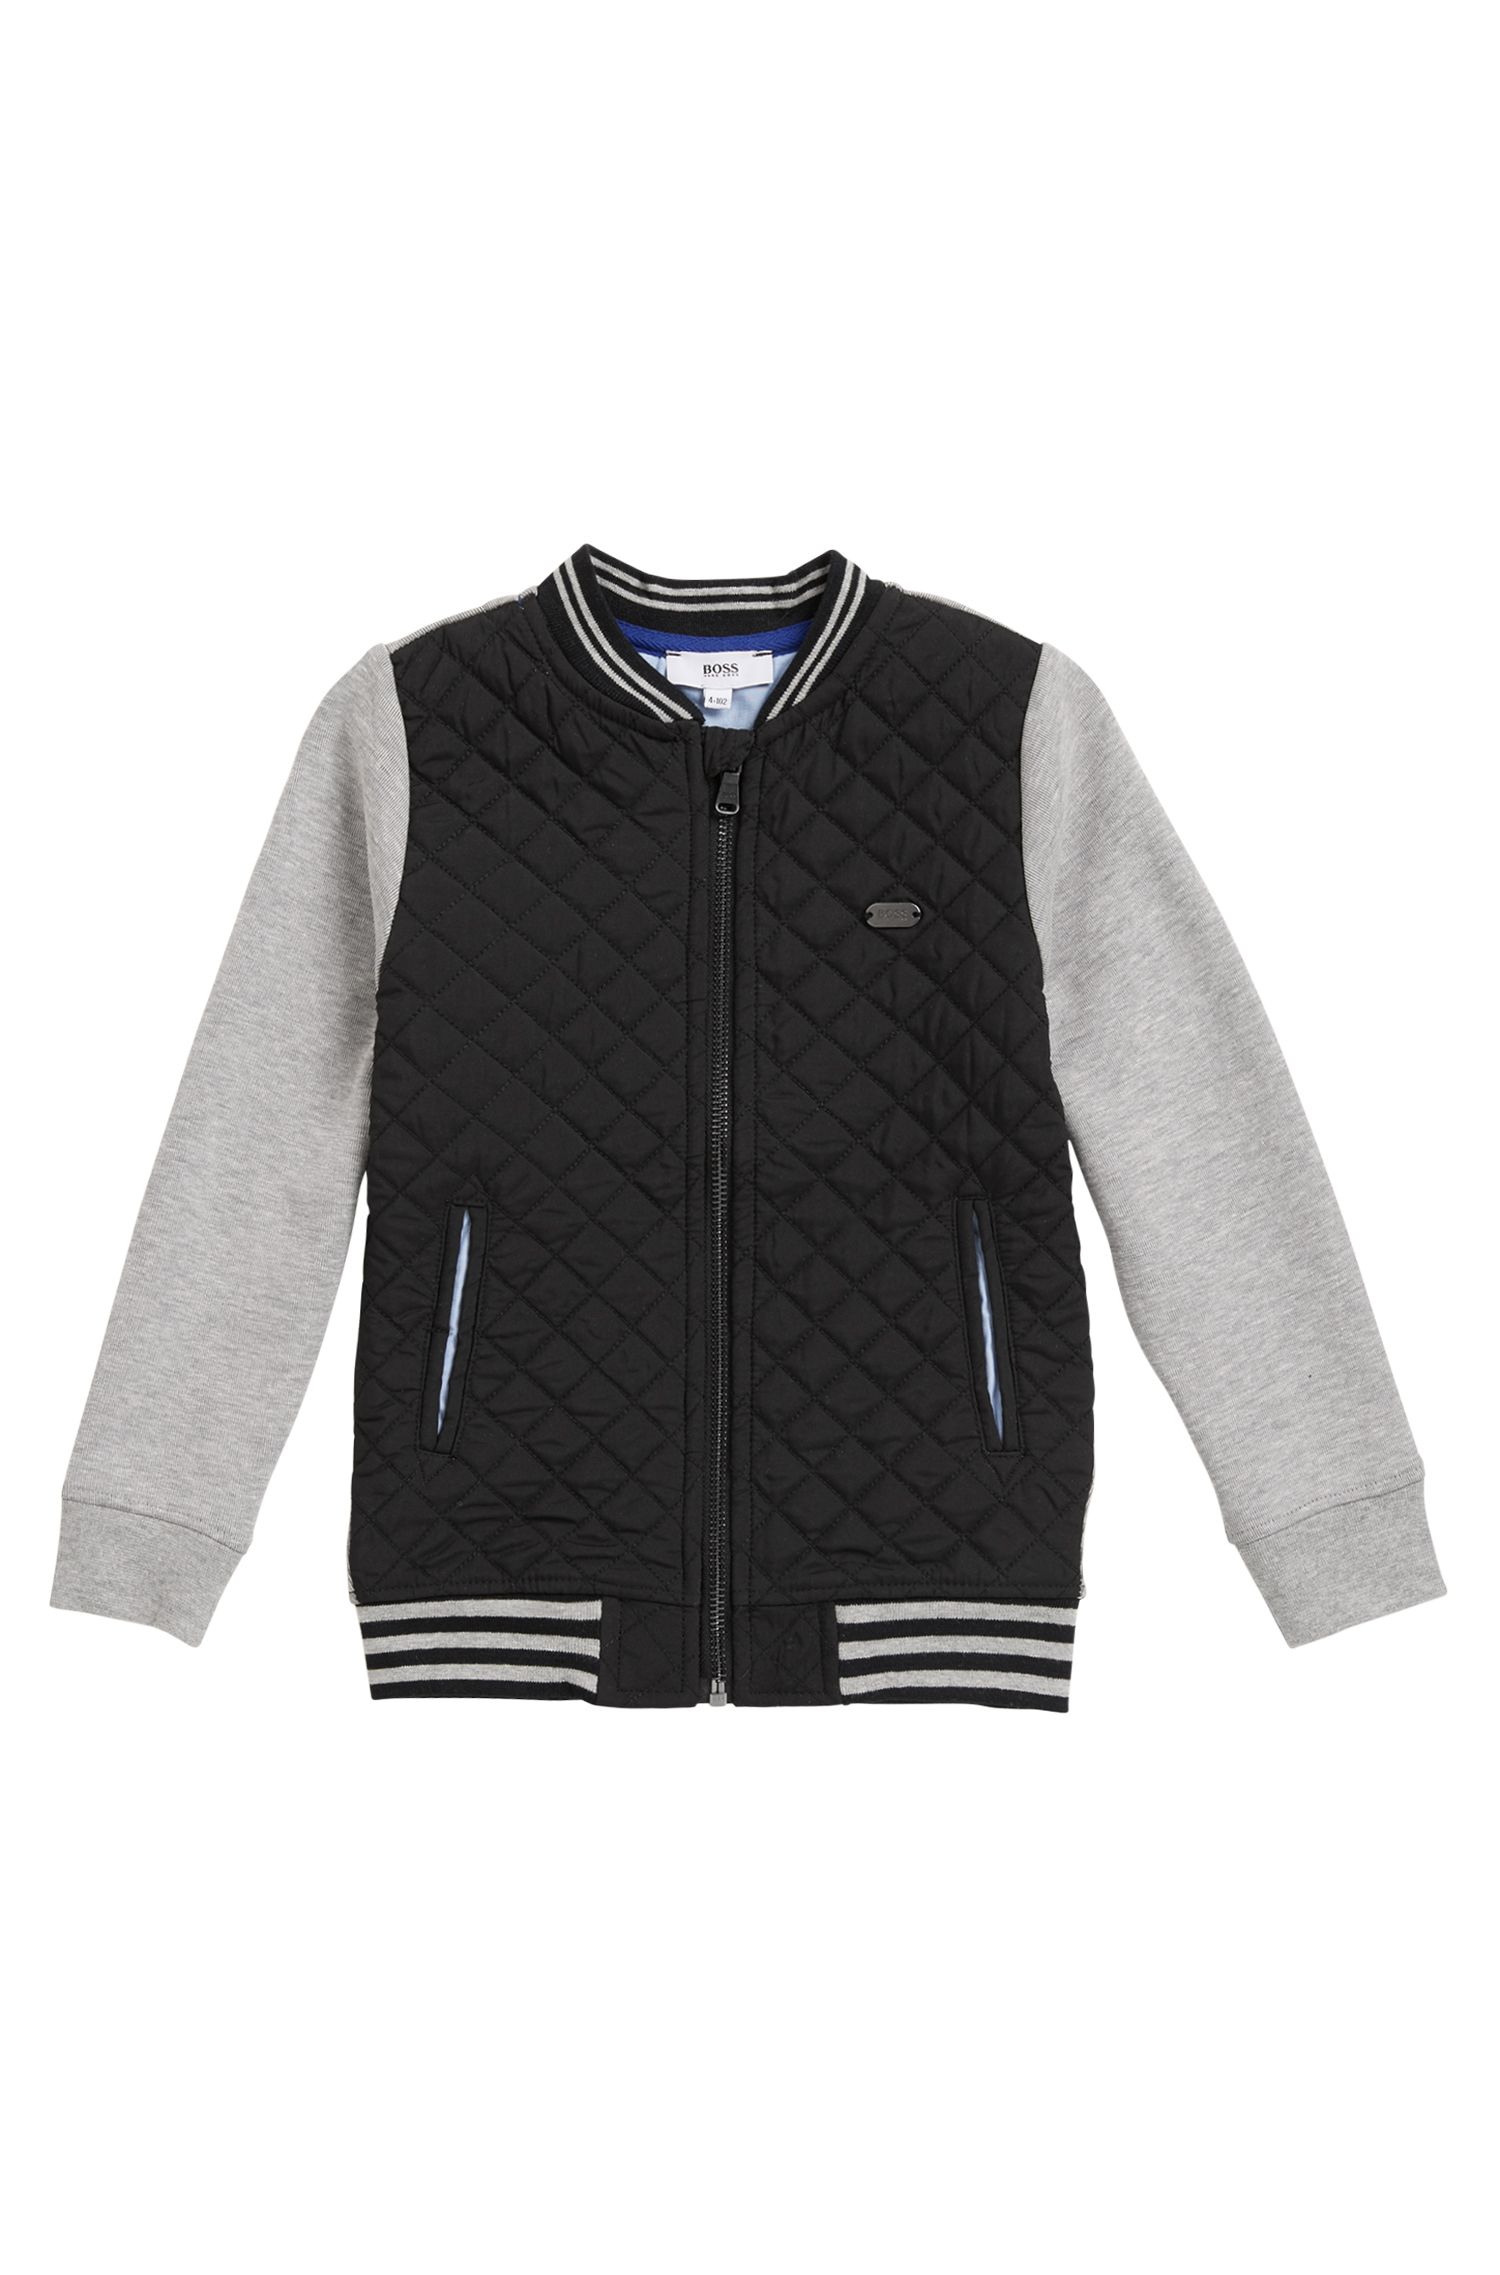 Kids' quilted twill and double-jersey jacket